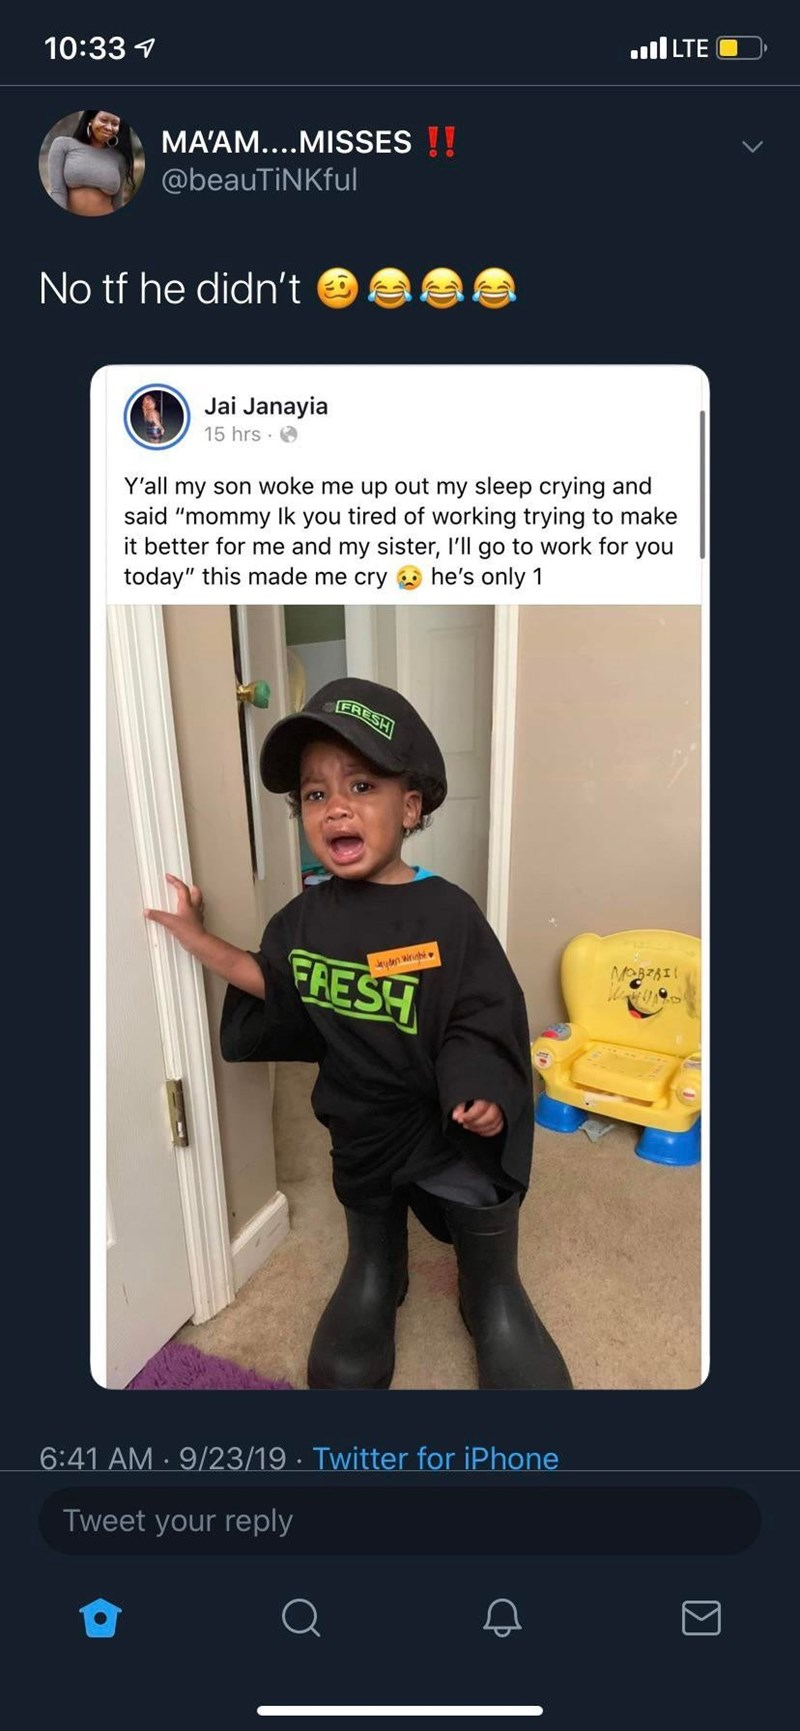 """Costume - l LTE 10:33 MA'AM....MISSES !! @beauTiNKful No tf he didn't Jai Janayia 15 hrs Y'all my son woke me up out my sleep crying and said """"mommy lk you tired of working trying to make it better for me and my sister, I'll go to work for you today"""" this made me cry he's only 1 LFRESH FRESH MOBzAI yden wrighi Twitter for iPhone 6:41 AM 9/23/19 Tweet your reply"""